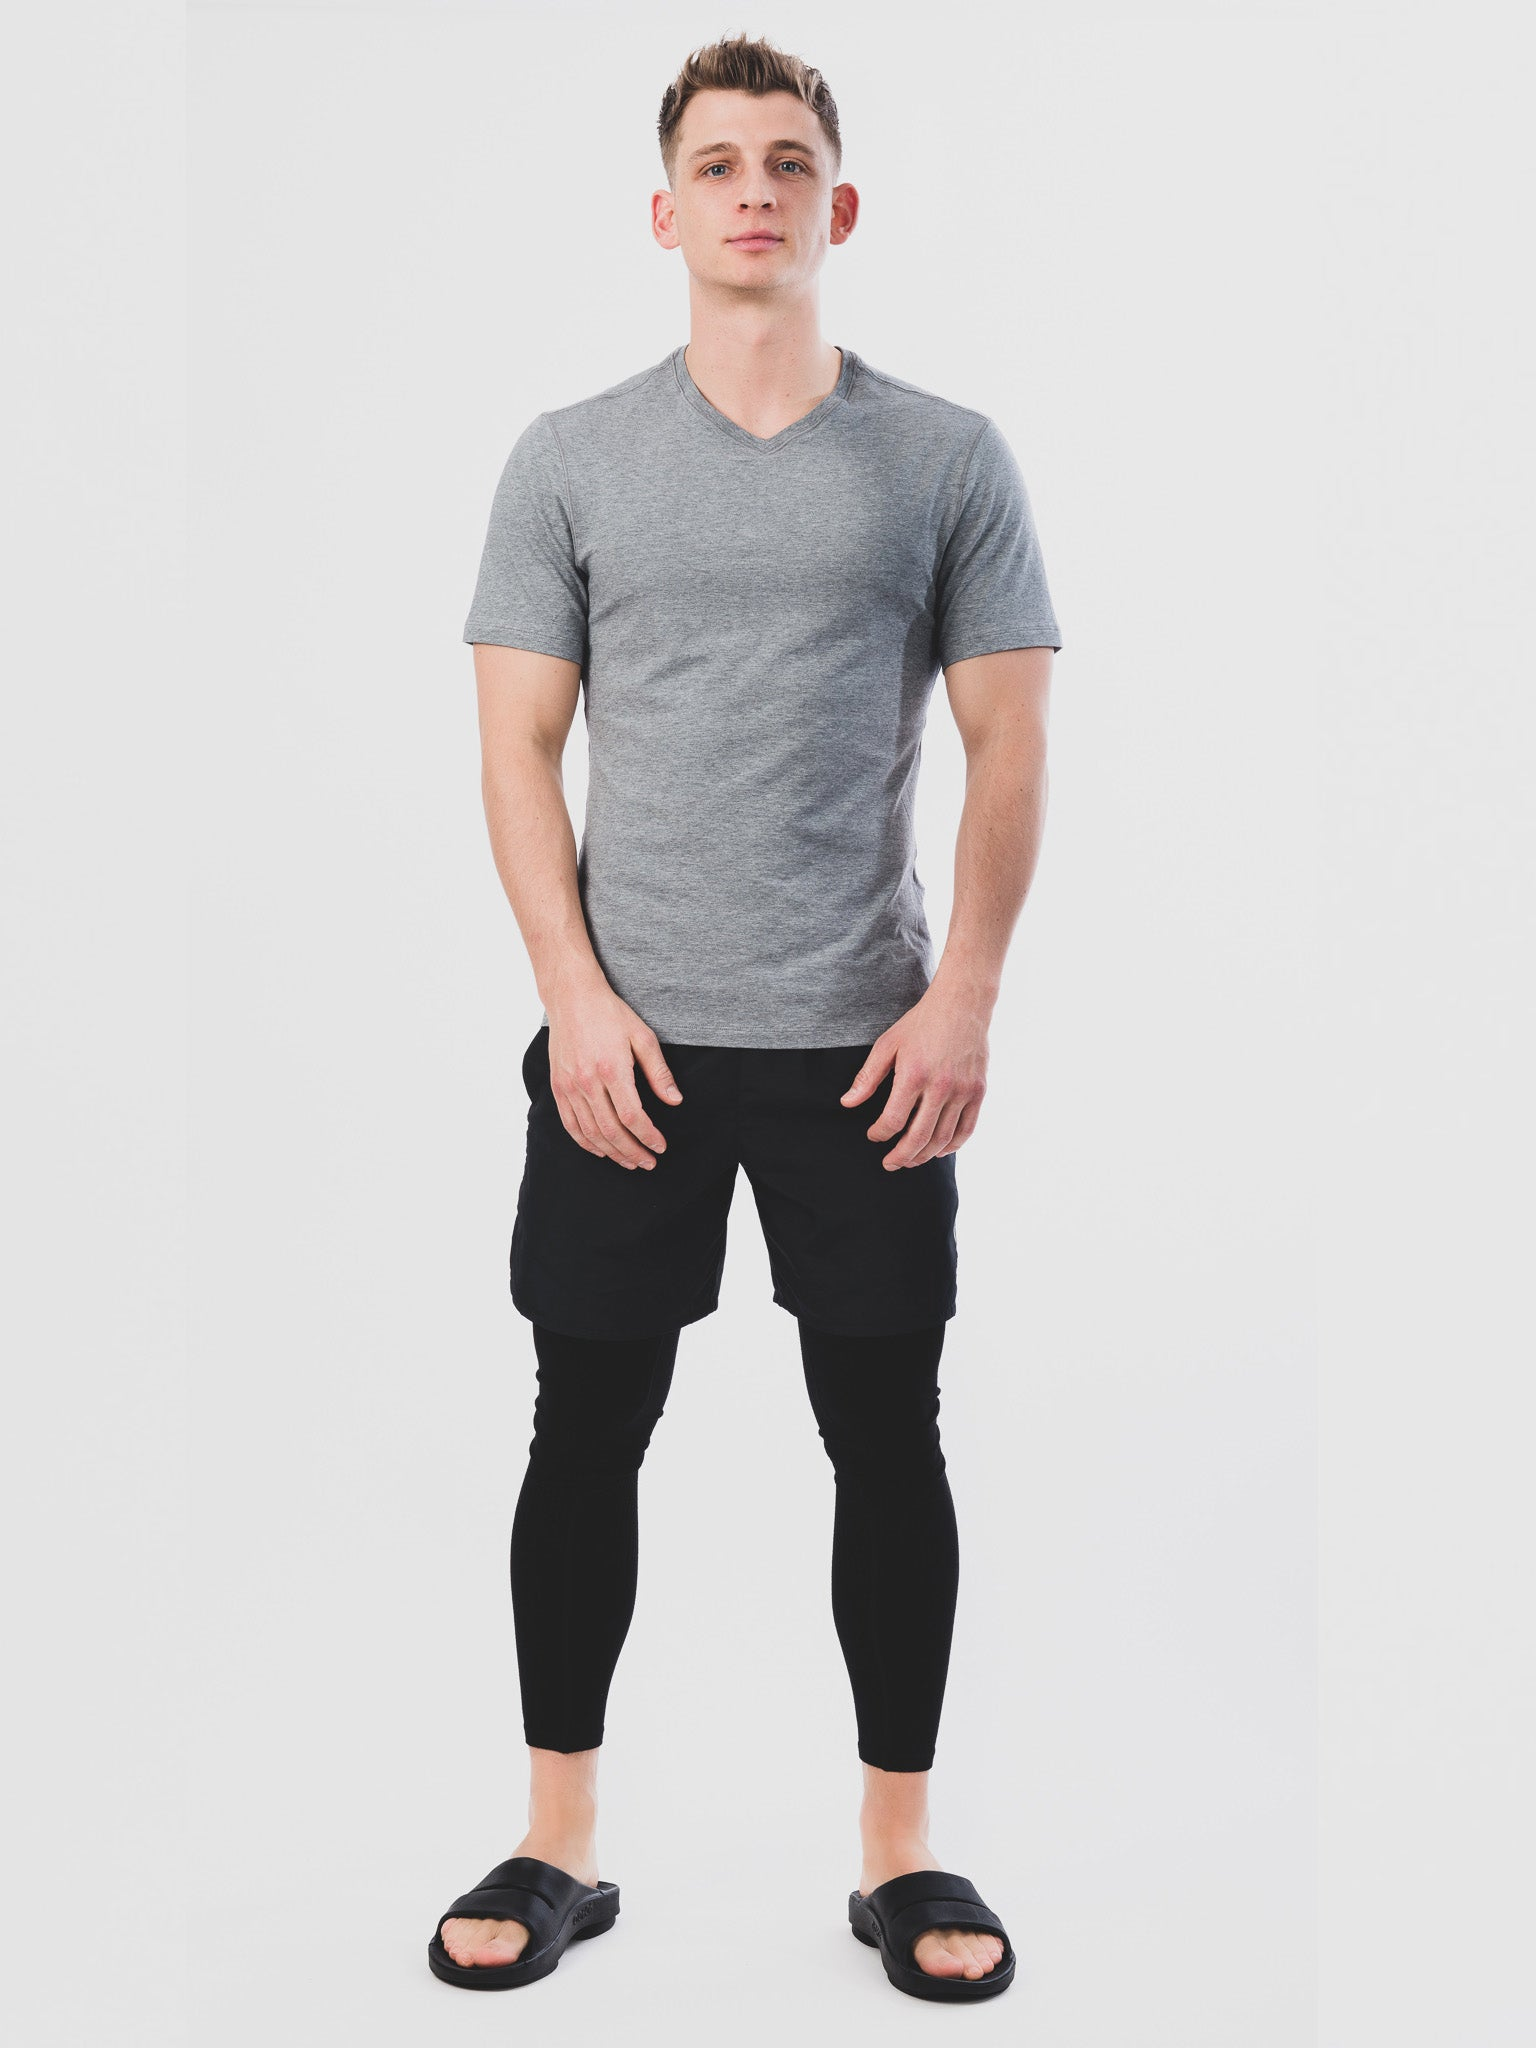 Men's OOahh Sport Matt Black Full Length